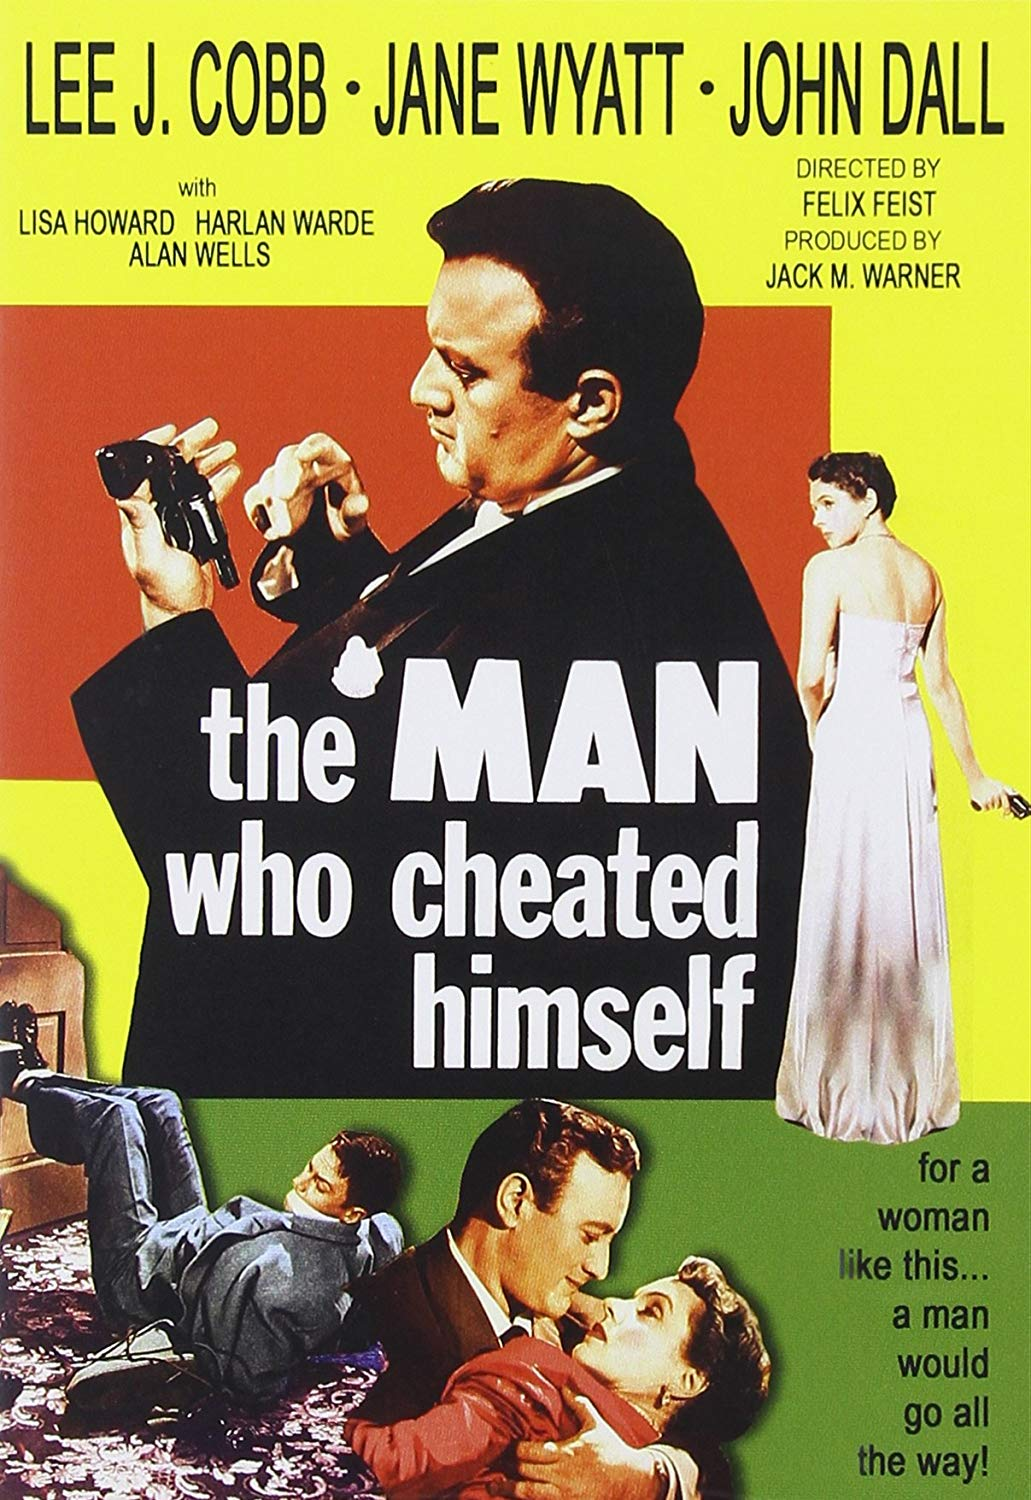 — THE MAN WHO CHEATED HIMSELF   Wealthy socialite Lois Frazer, divorcing her fortune-hunter husband, Howard, finds a gun he's bought. She kills him with it in front of the new man in her life, Lt. Ed Cullen, a homicide detective with the San Francisco police. The twice-married Lois manages to manipulate Cullen into disposing of the murder weapon and moving the body. Cullen ends up investigating the case, assisted by kid brother Andy, who is new to the homicide division and delays his honeymoon to keep working on his first big case.